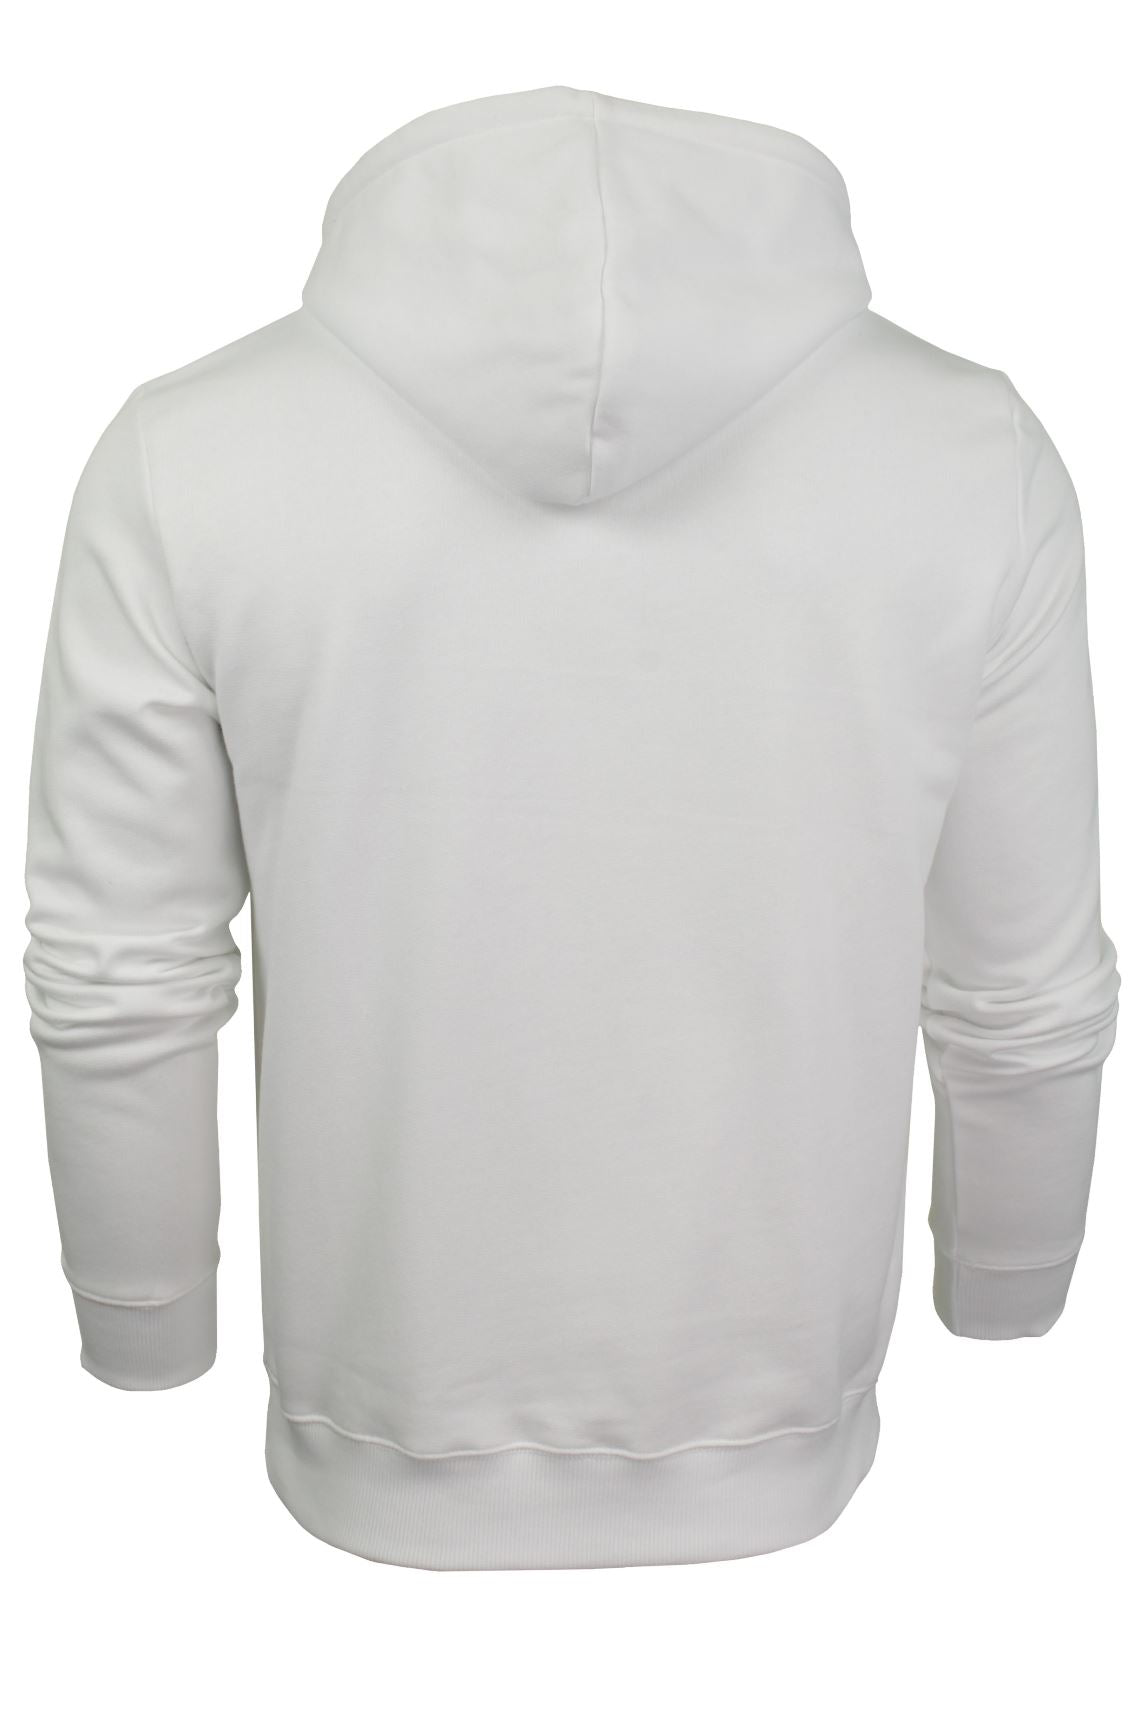 Mens Overhead Hoodie by Merc London 'Pill'_02_1804219_Pill_White